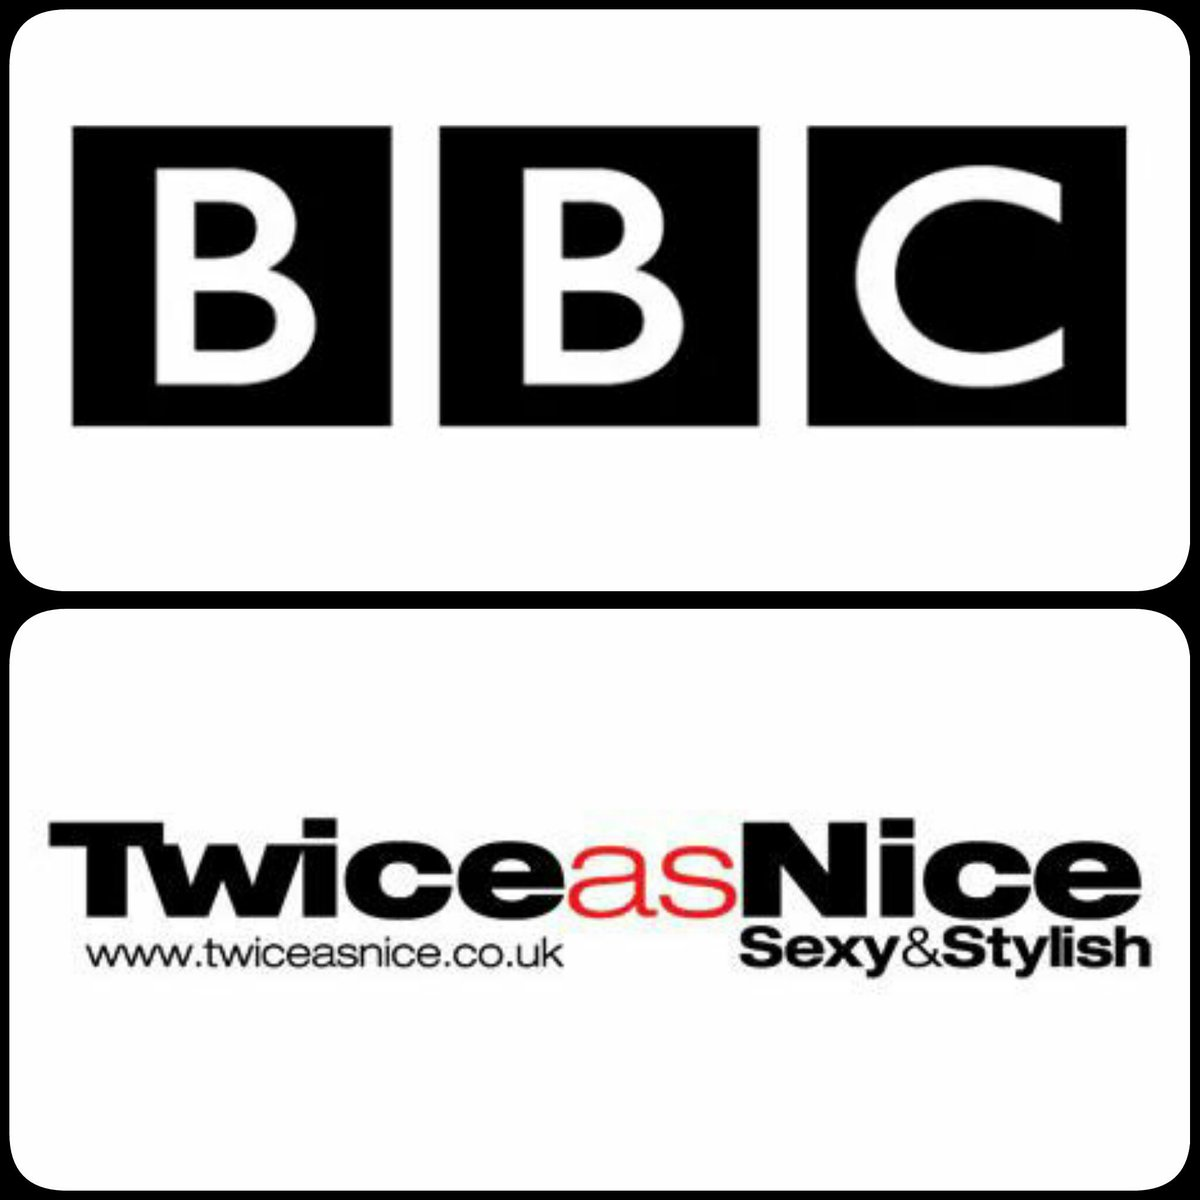 #Send #In #Pics #Of #Your #TwiceasNice #Memories Email:  PHOP@7Wonder.co.uk #Bbc #Documentary